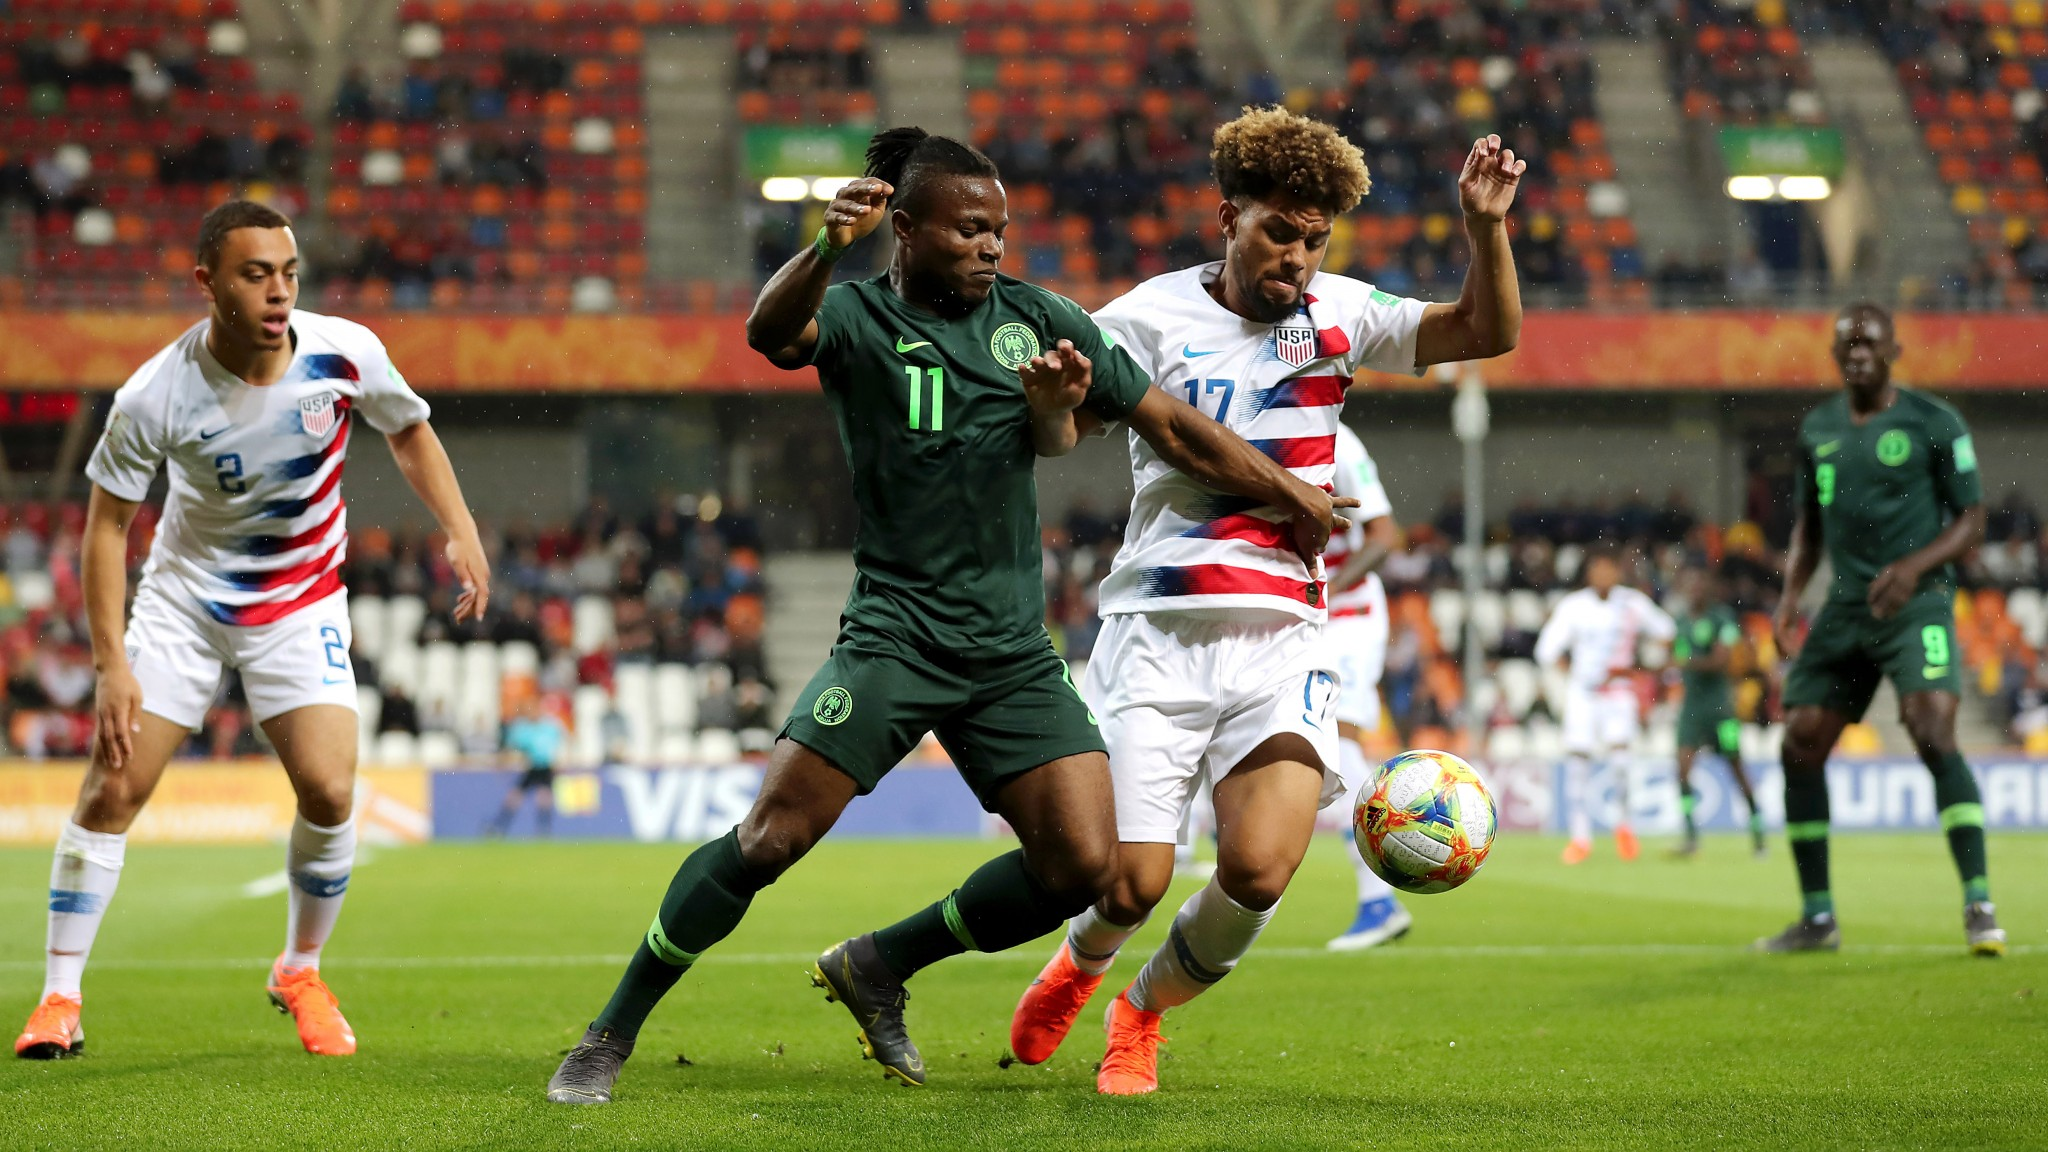 Flying Eagles set for crucial tie against Ukraine